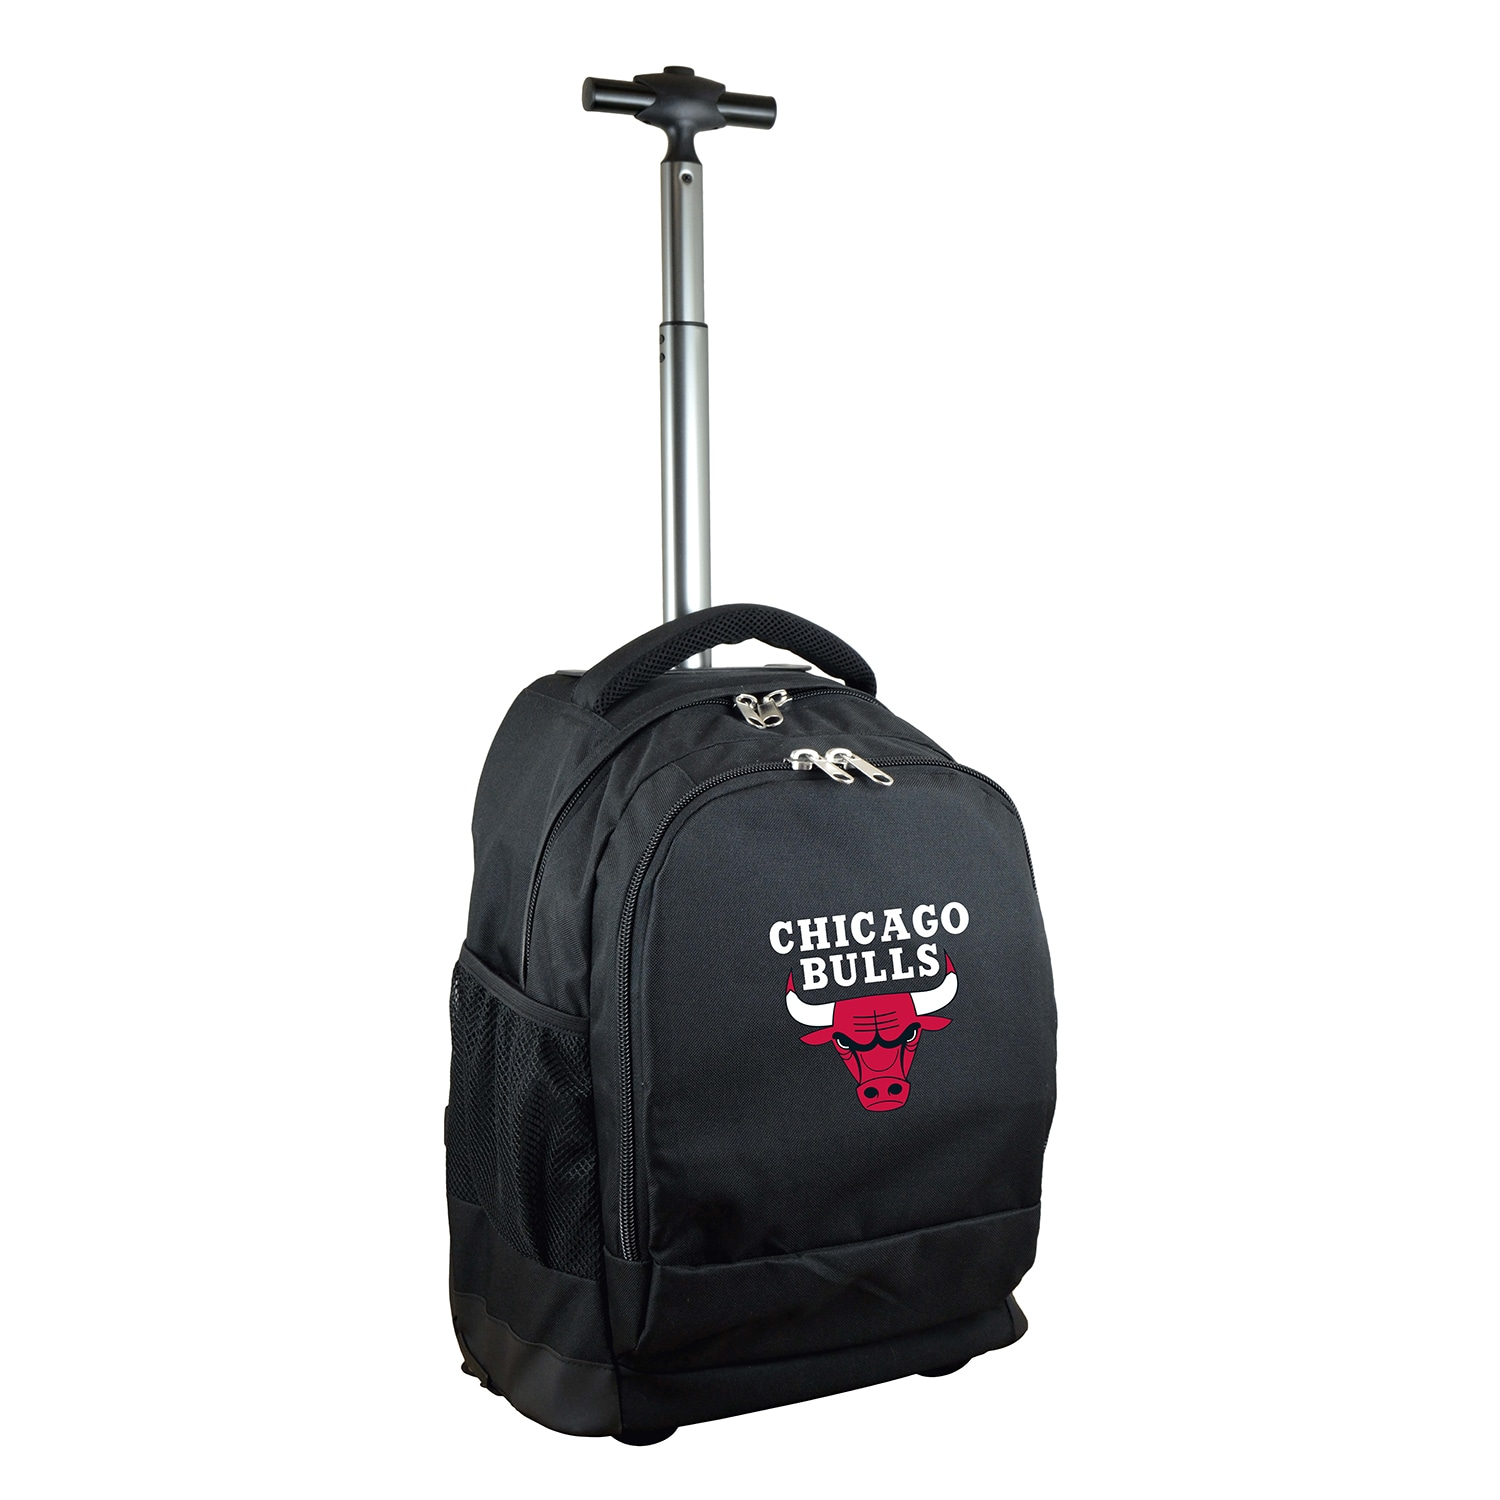 Chicago Bulls 19'' Premium Wheeled Backpack - Black